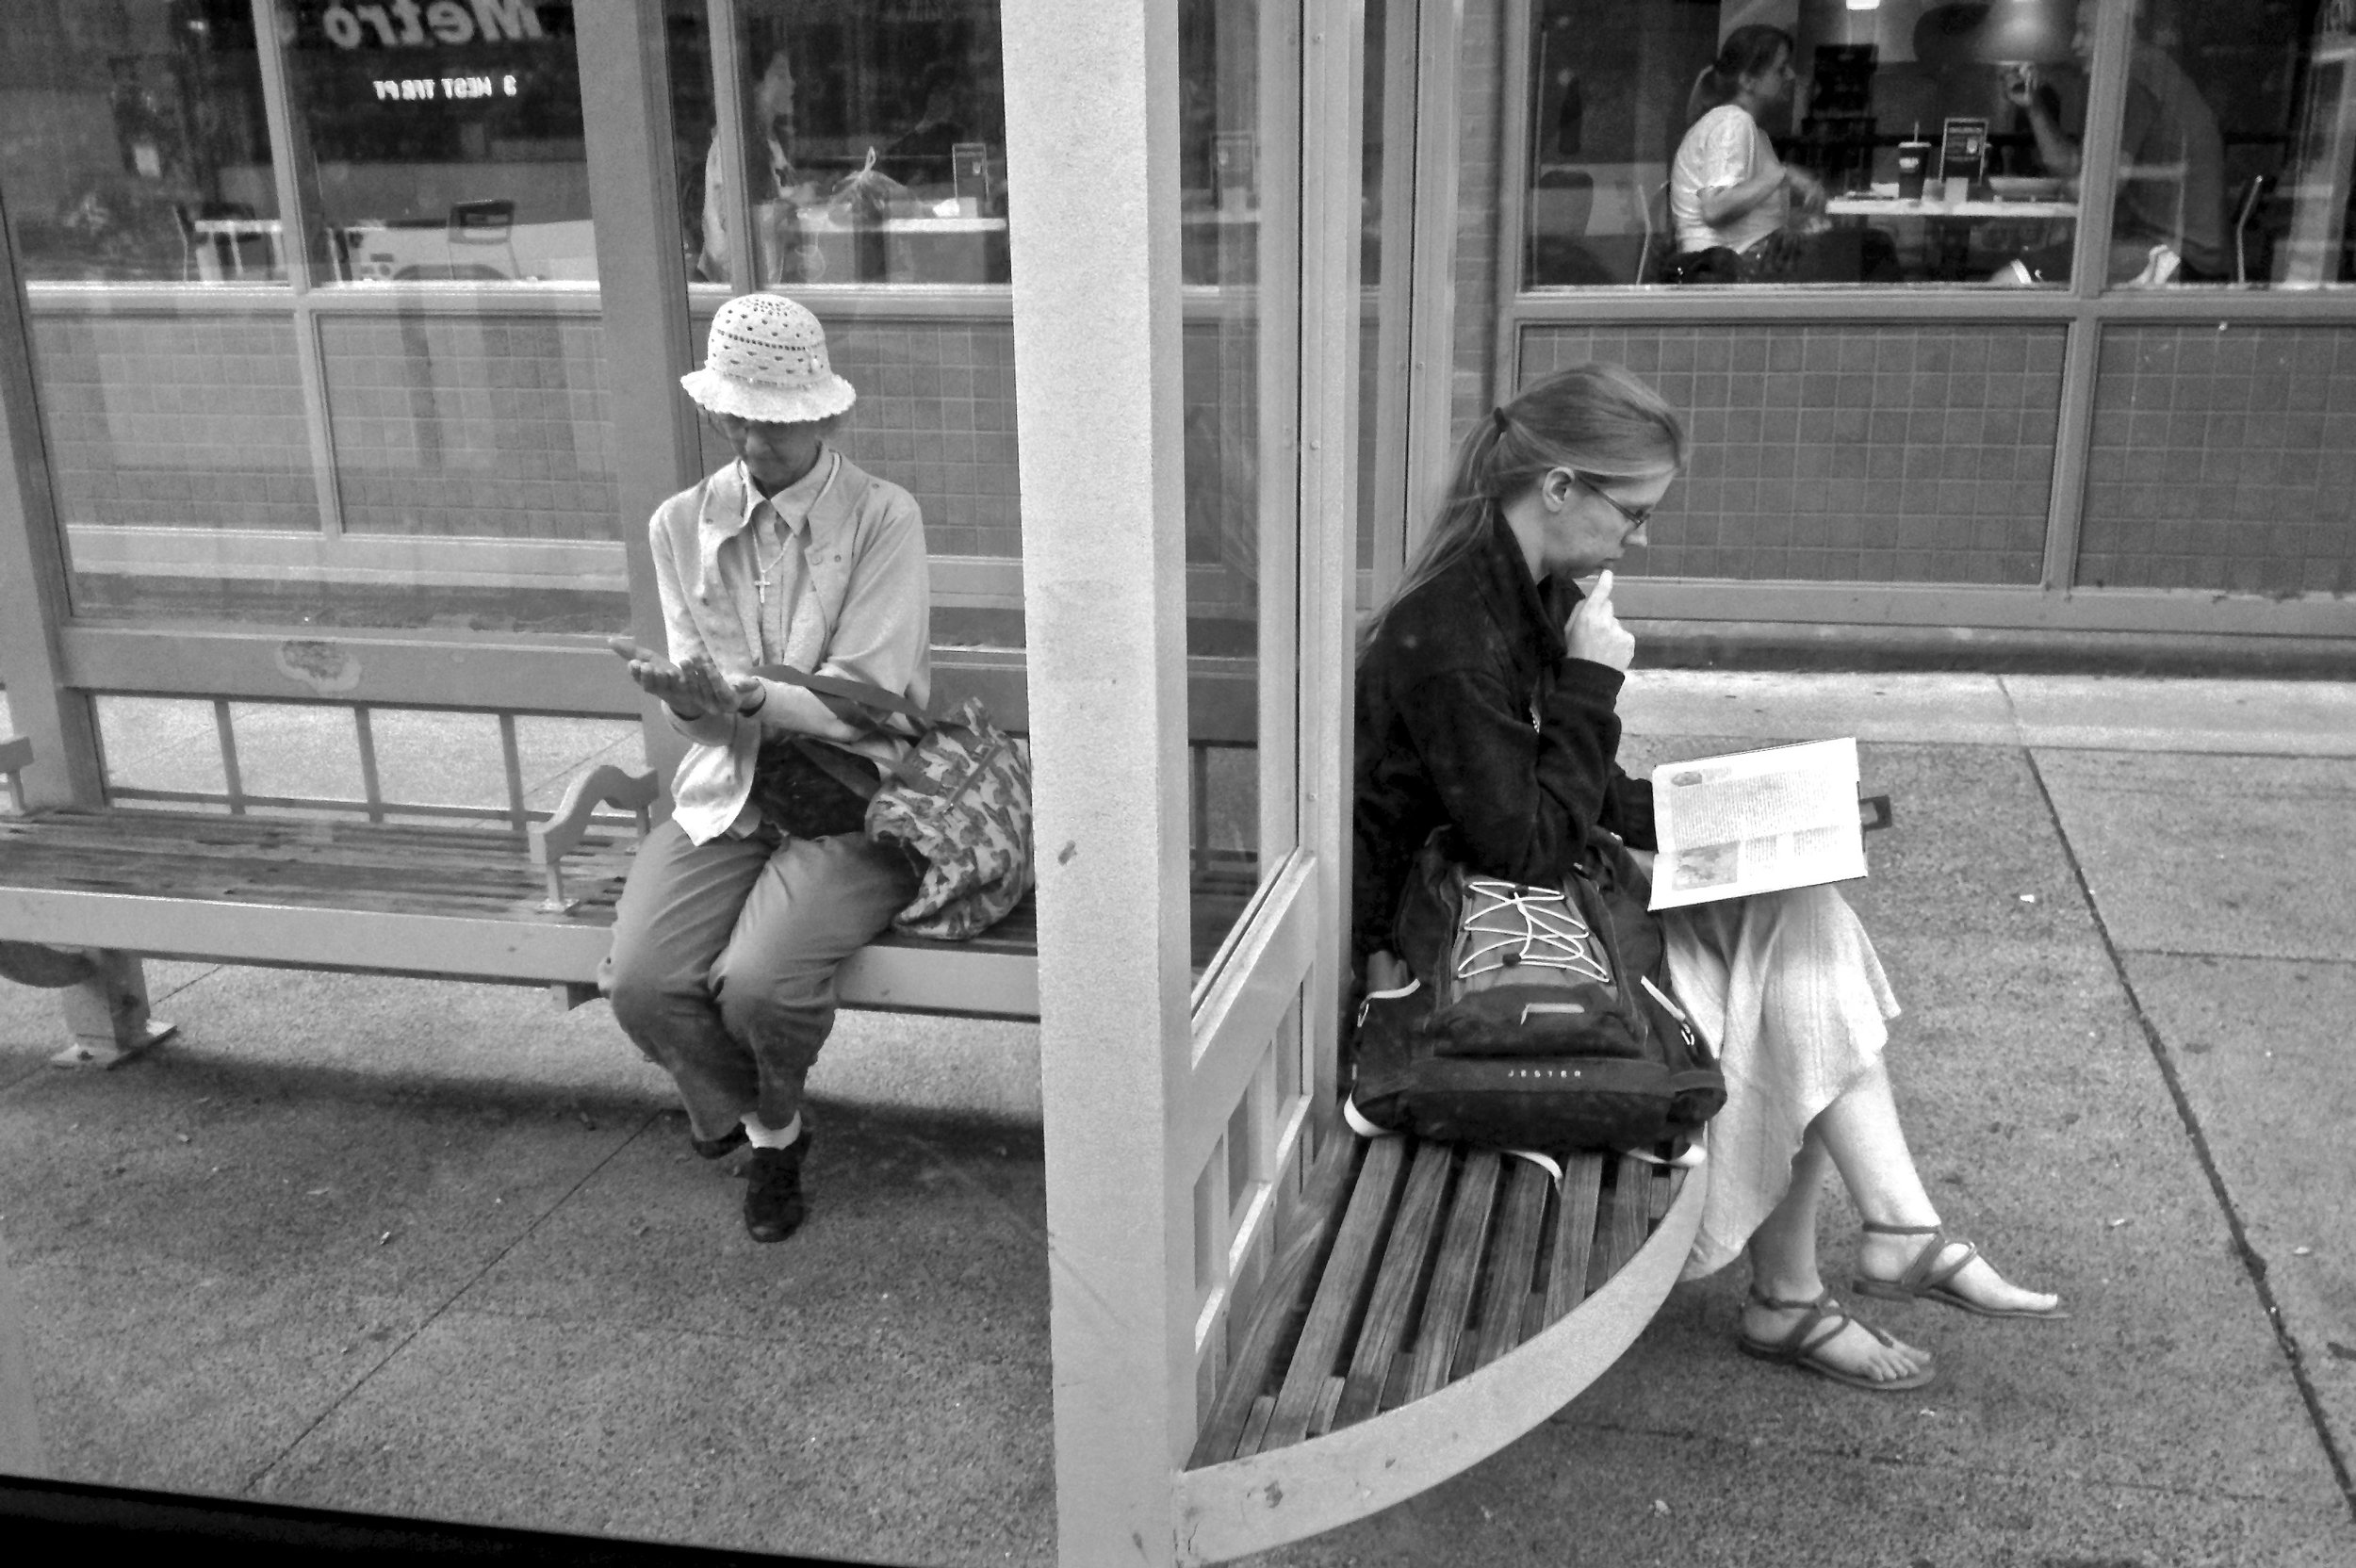 Women at a Bus Stop.  State Street. Madison, Wisconsin.  June 2015. © William D. Walker